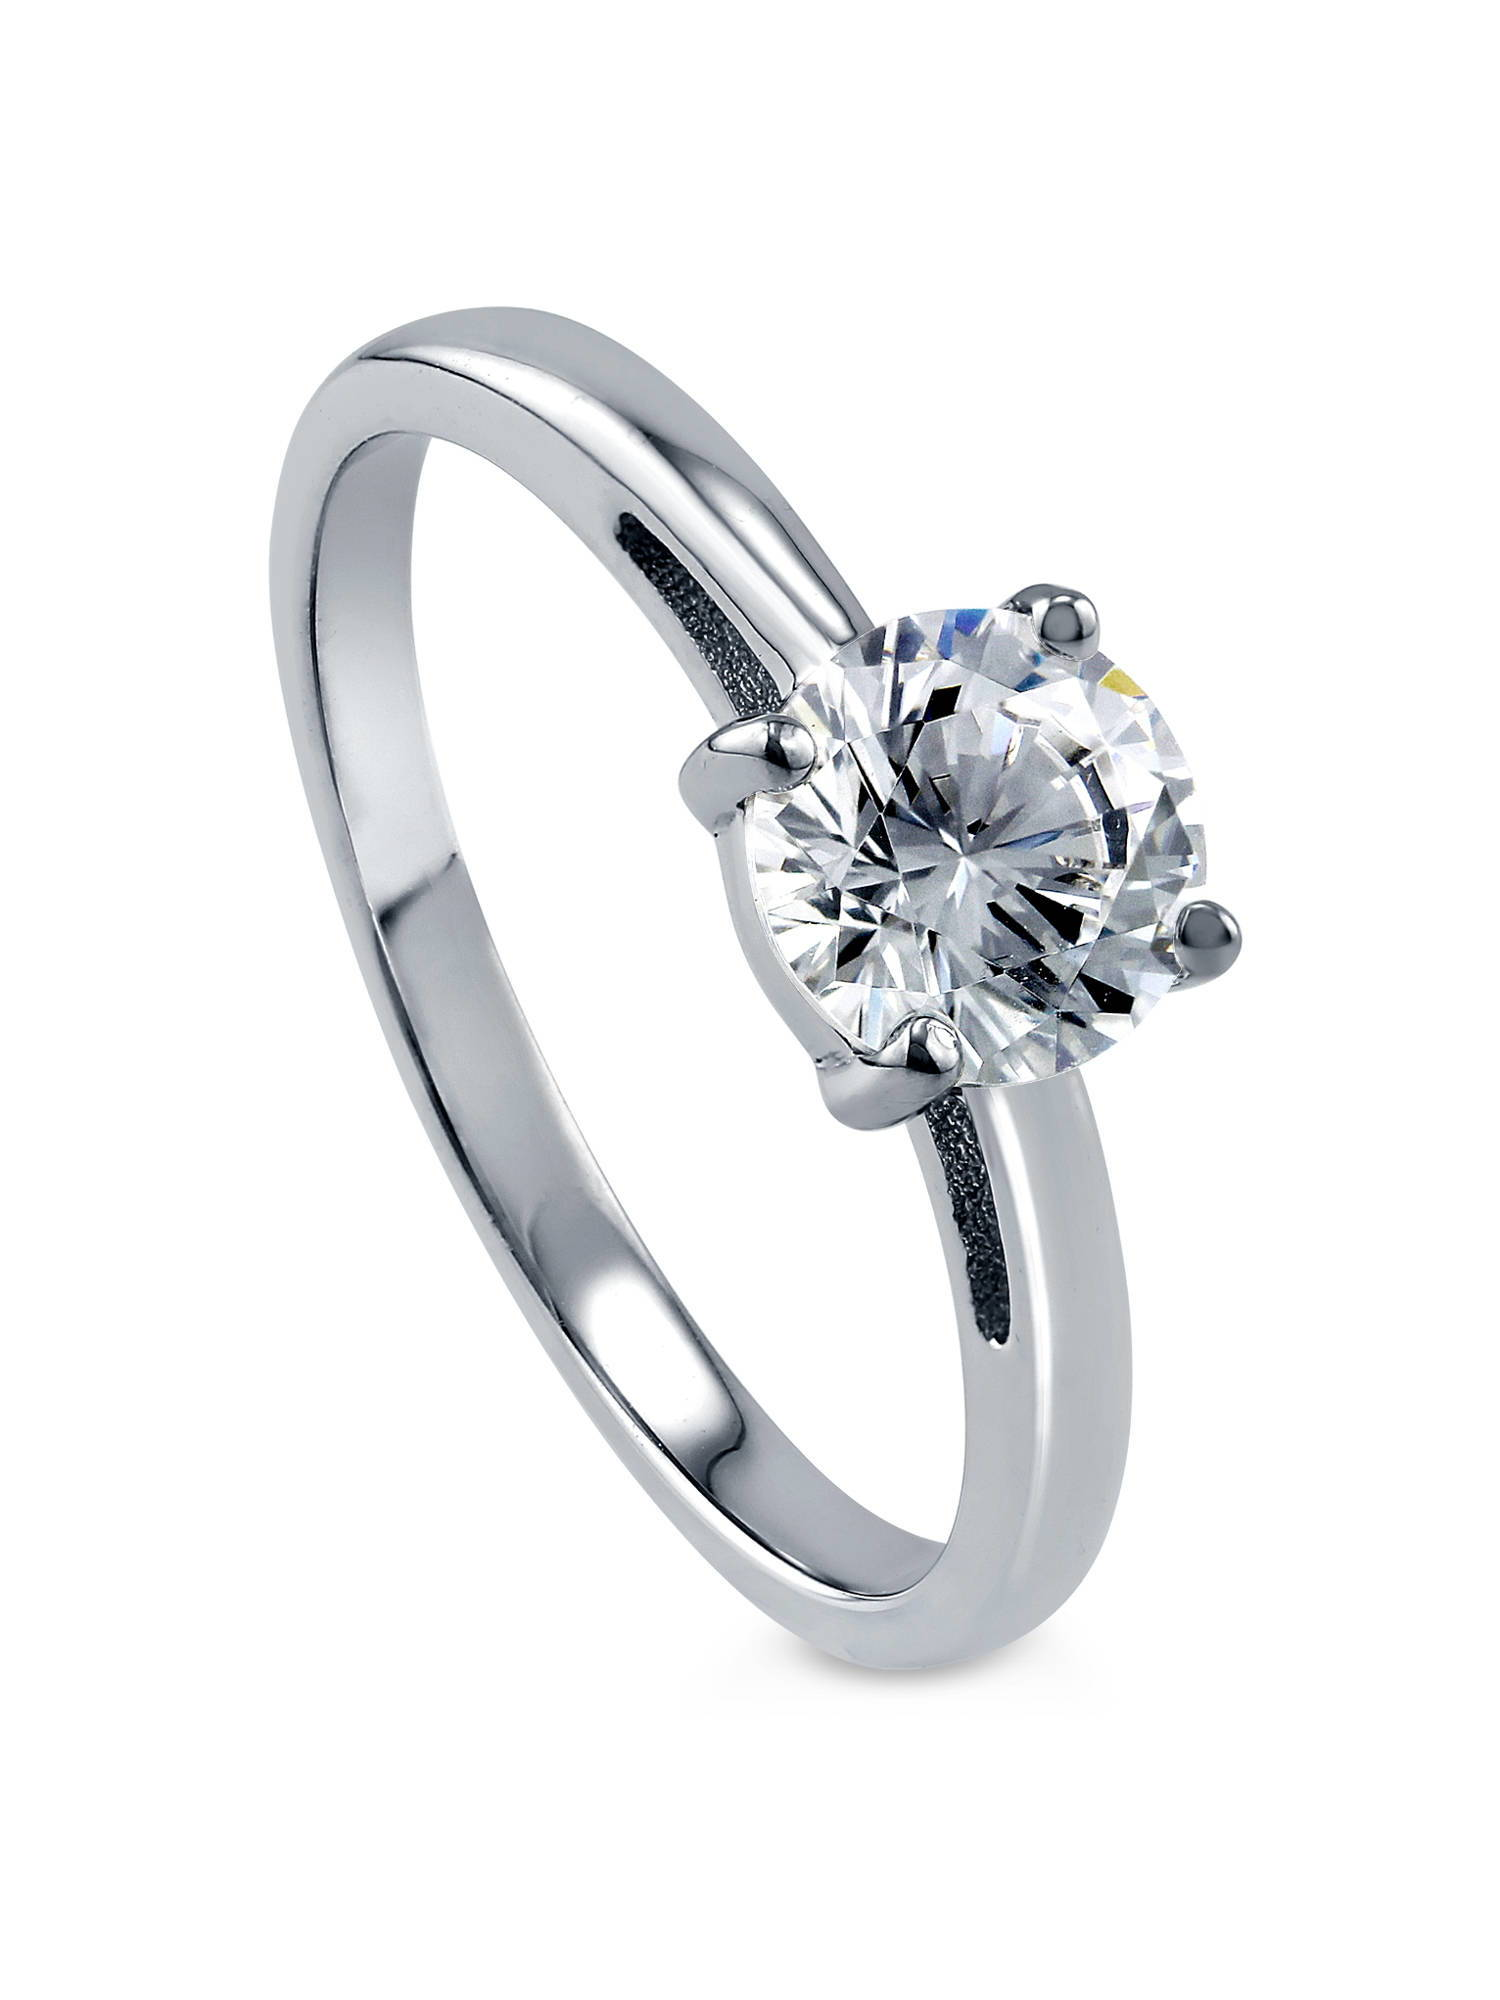 BERRICLE Rhodium Plated Sterling Silver Cubic Zirconia CZ Solitaire Promise Ring Size 10.5